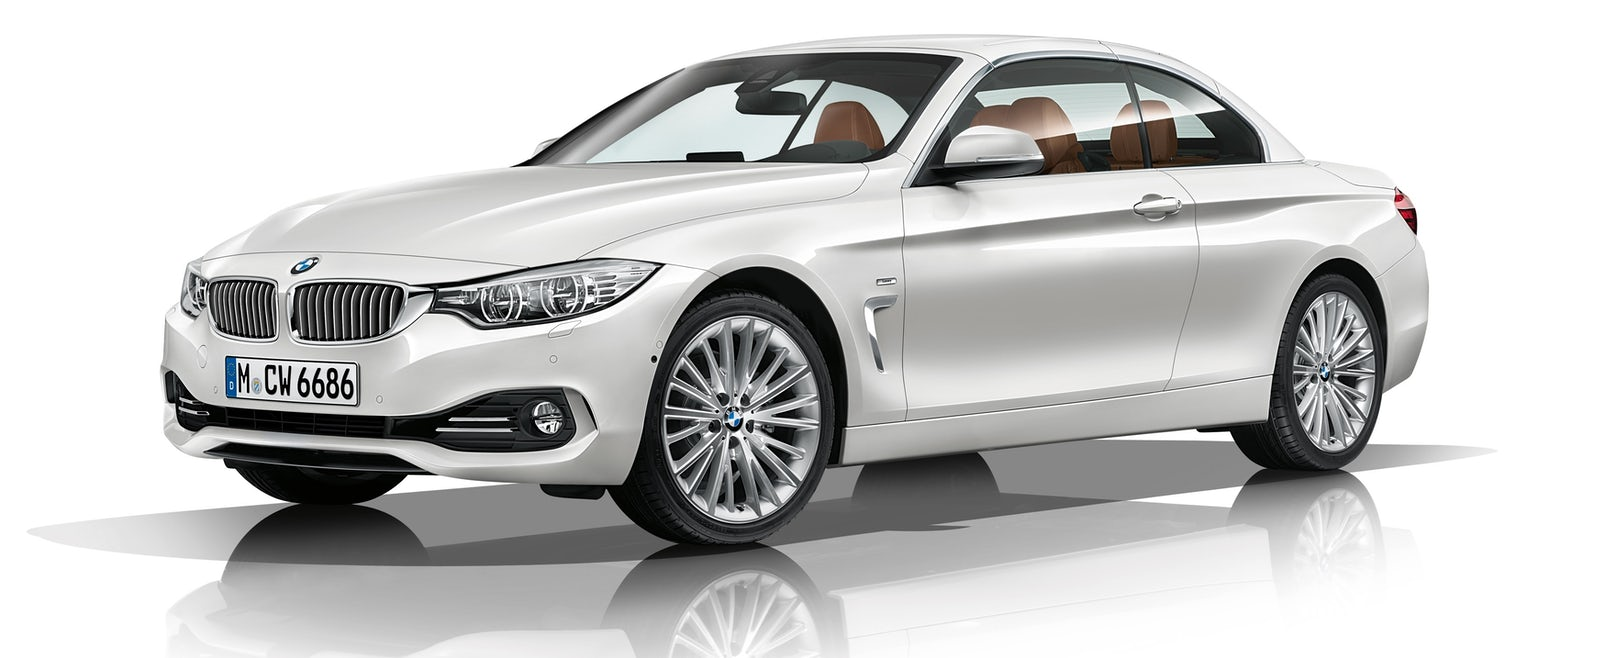 bmw 4 series convertible sizes dimensions guide carwow. Black Bedroom Furniture Sets. Home Design Ideas